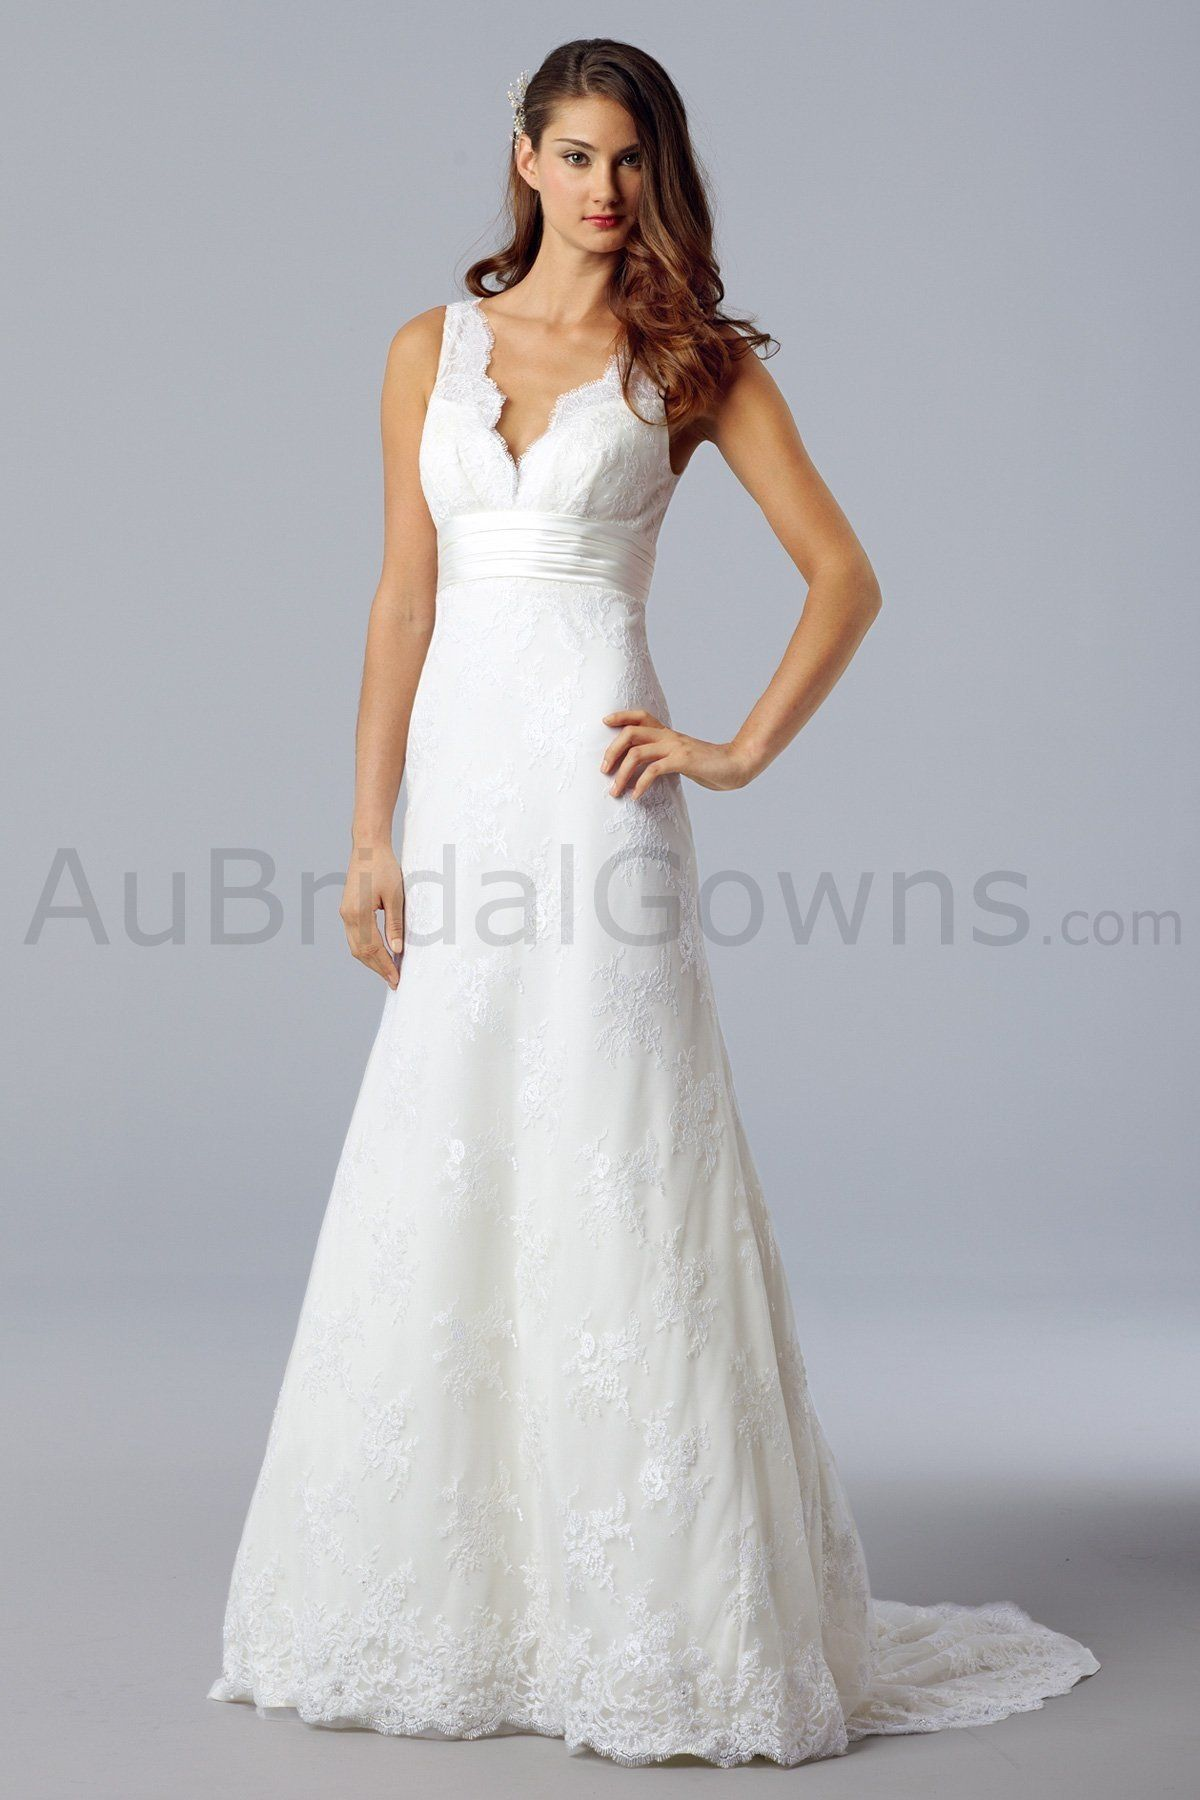 Wedding dresses wedding gowns ue aline gowns ue lace vneck